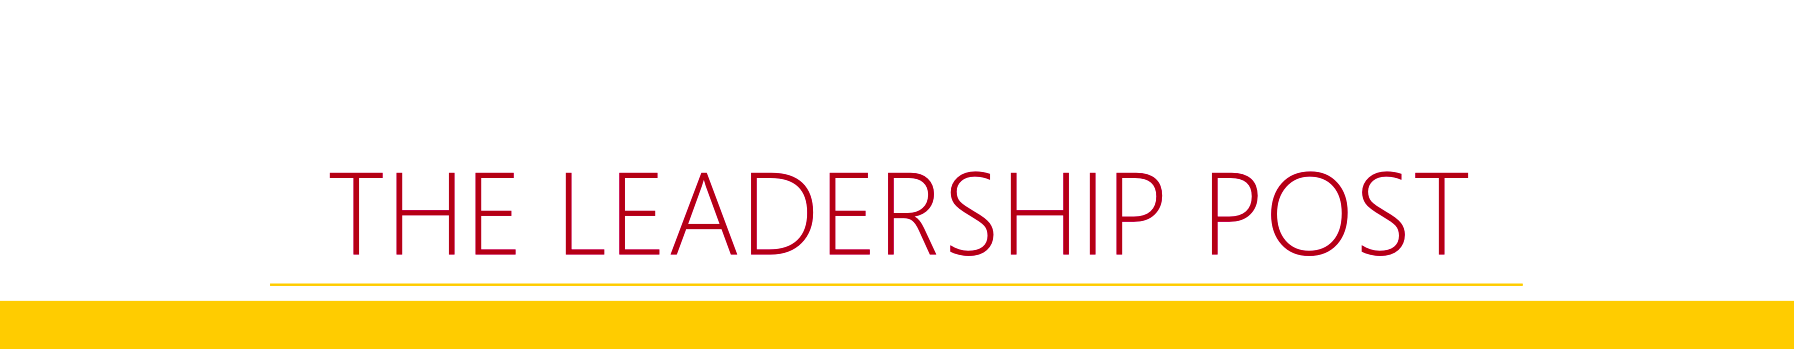 The Leadership Post